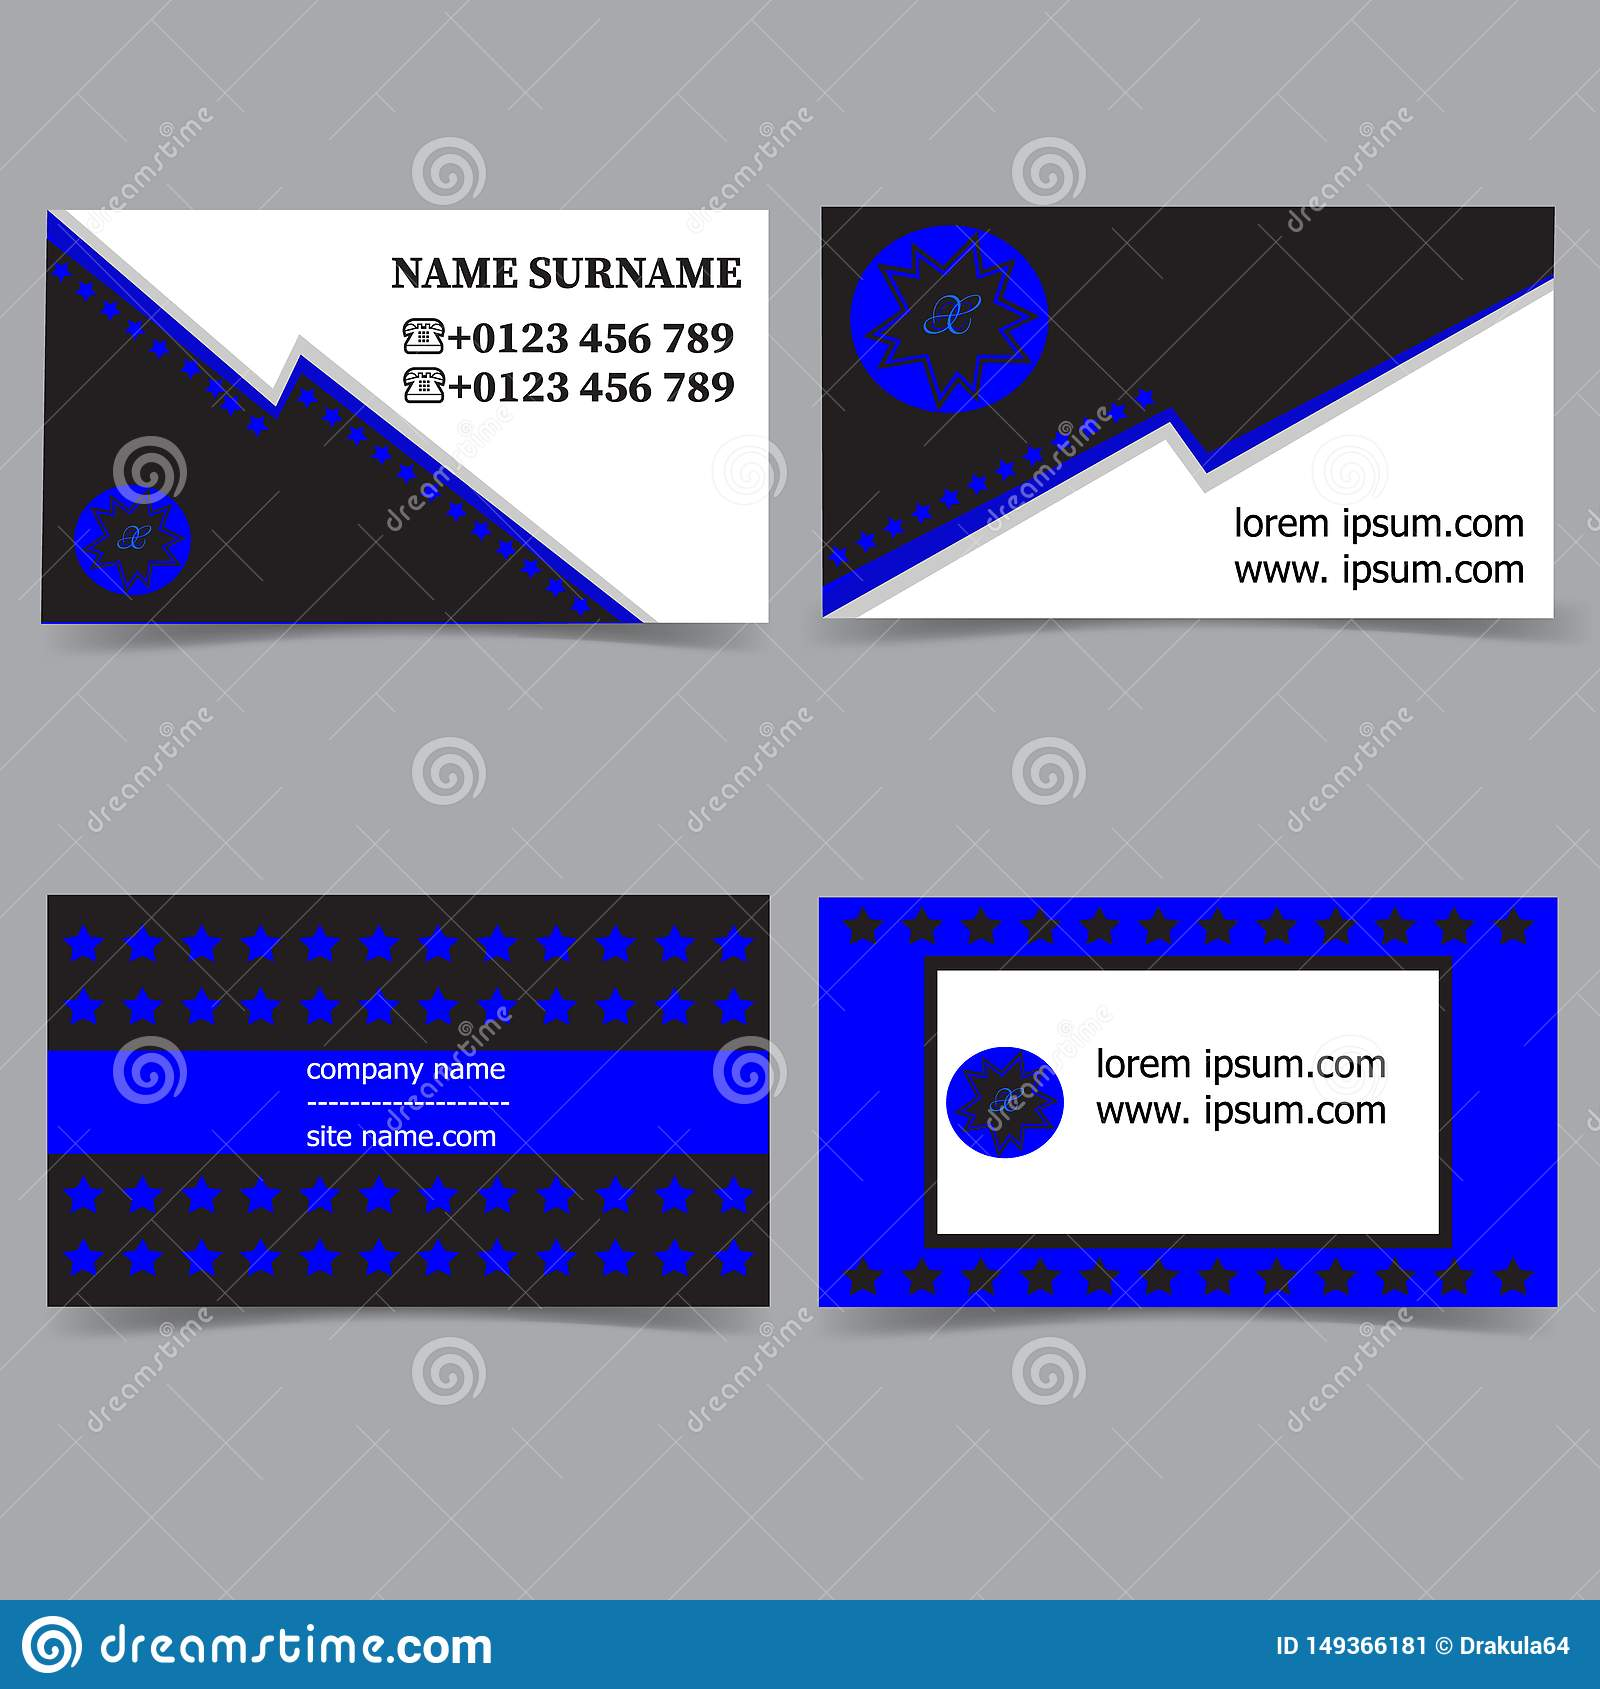 Business card templates. Stationery design vector set. Blue, white and black colors. Flat style vector illustration